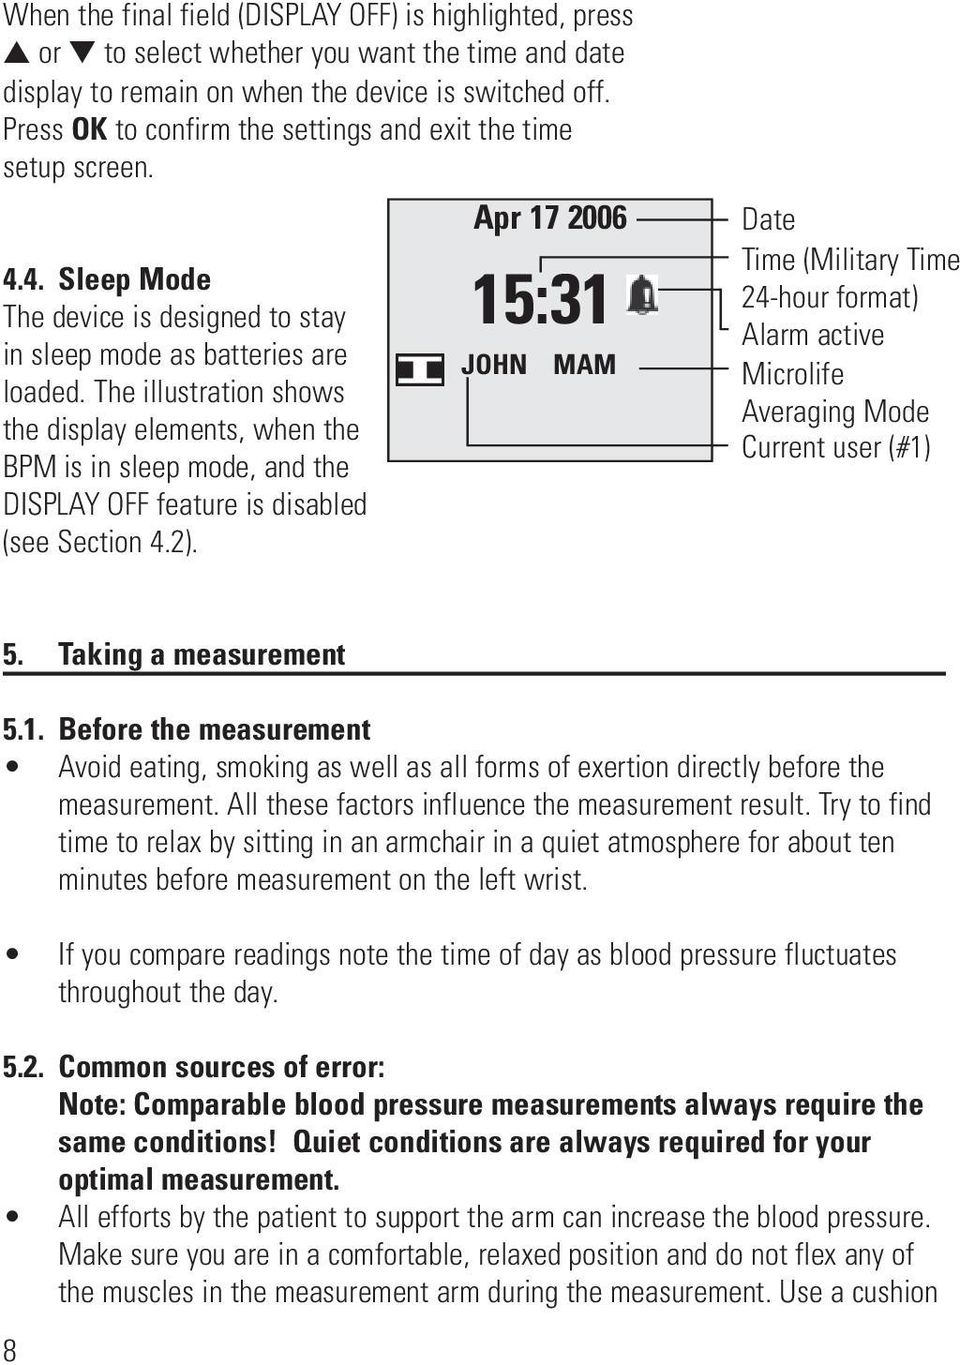 The illustration shows the display elements, when the BPM is in sleep mode, and the DISPLAY OFF feature is disabled (see Section 4.2).